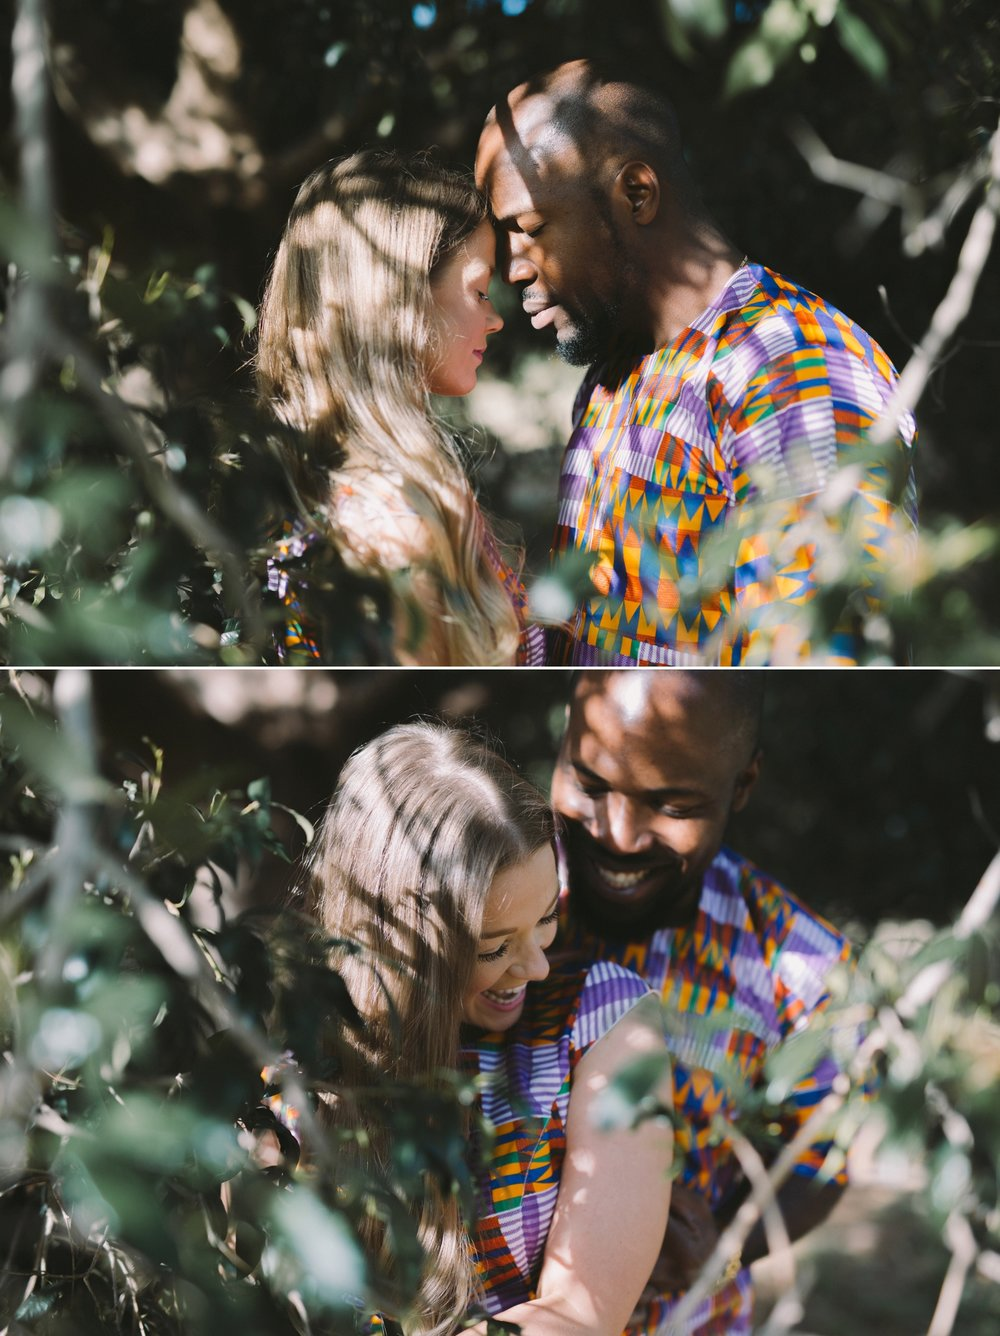 Chloe & Lumi - Natural engagement portraits in Adelaide - Natural engagement photos - www.katherineschultzphotography.com 4